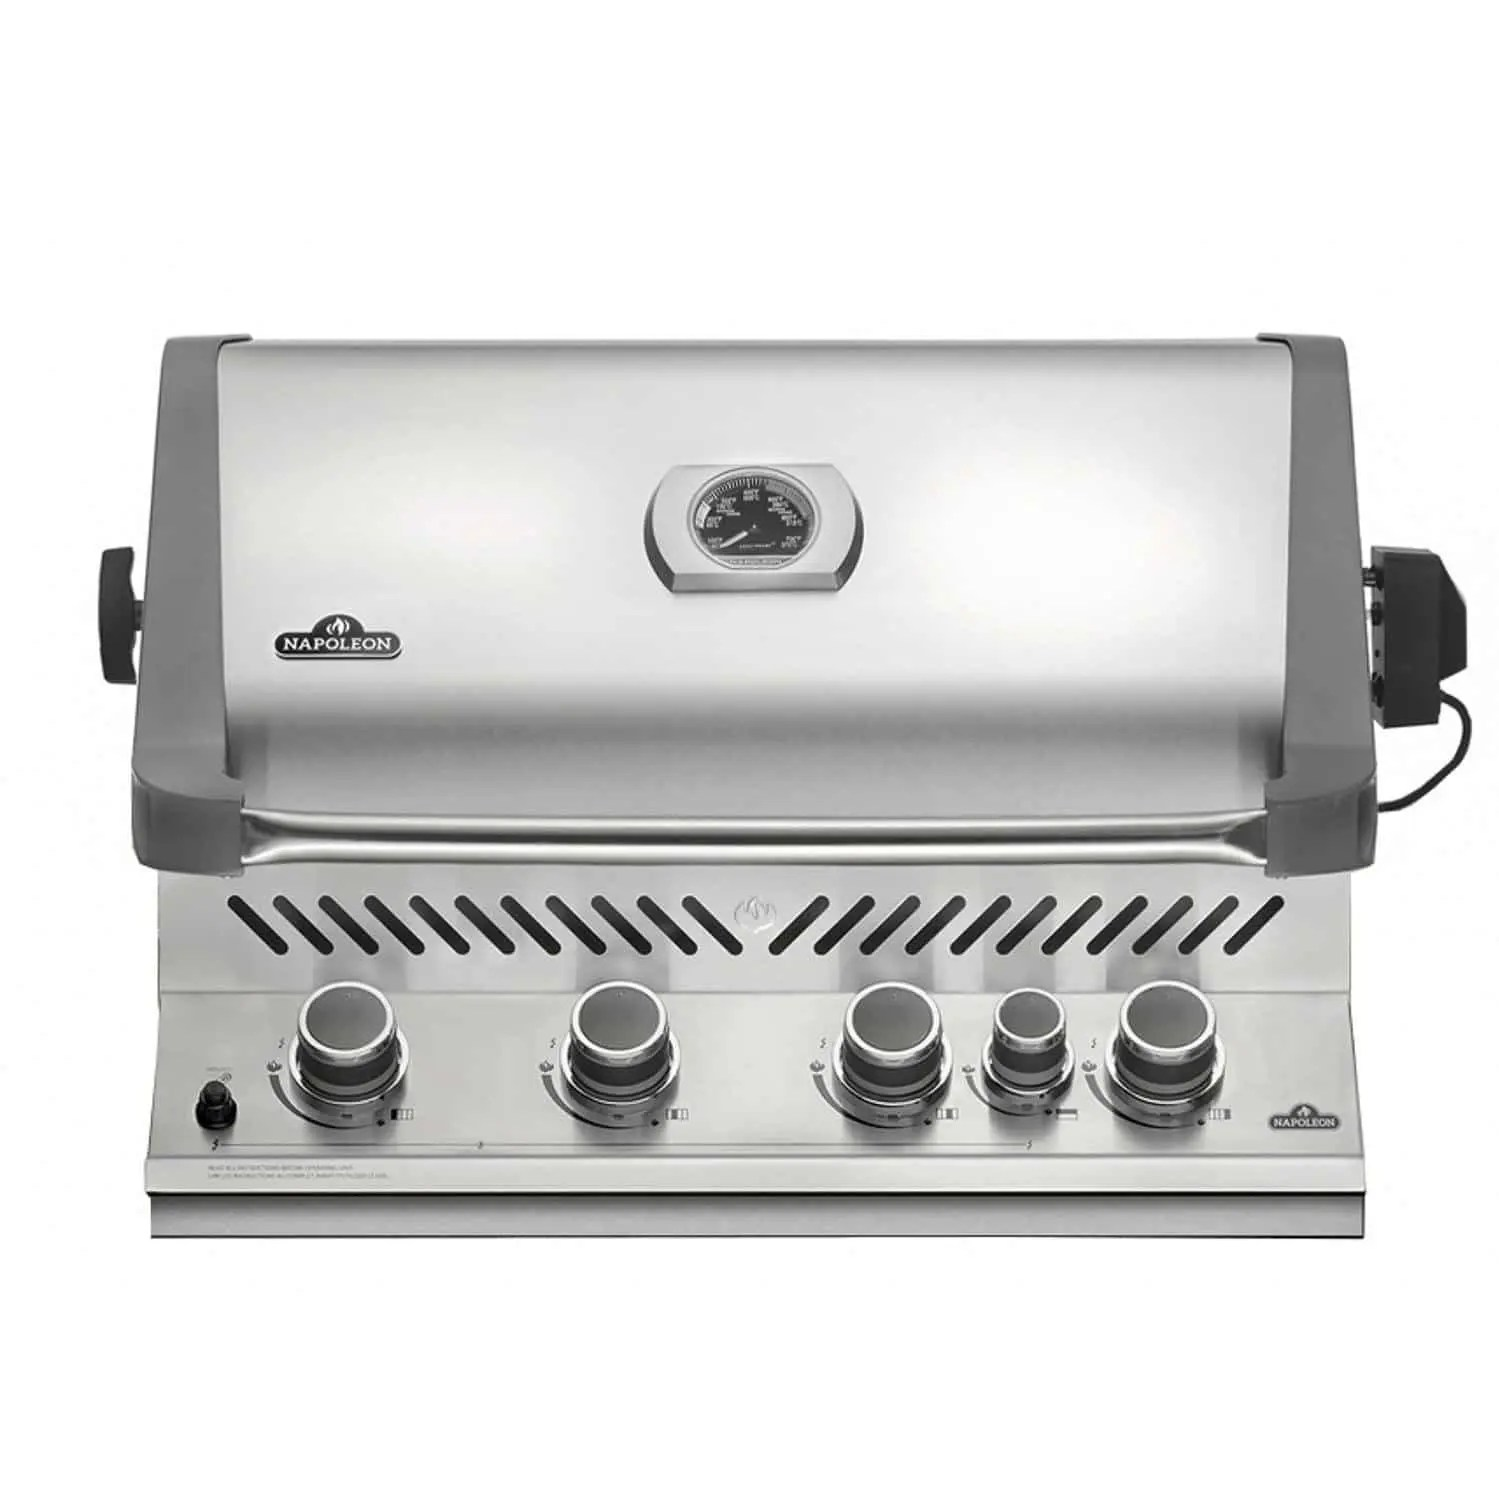 Napoleon Grill Sizzle Zone Napoleon Grills Prestige 500 Built In Gas Grill Review And Rating